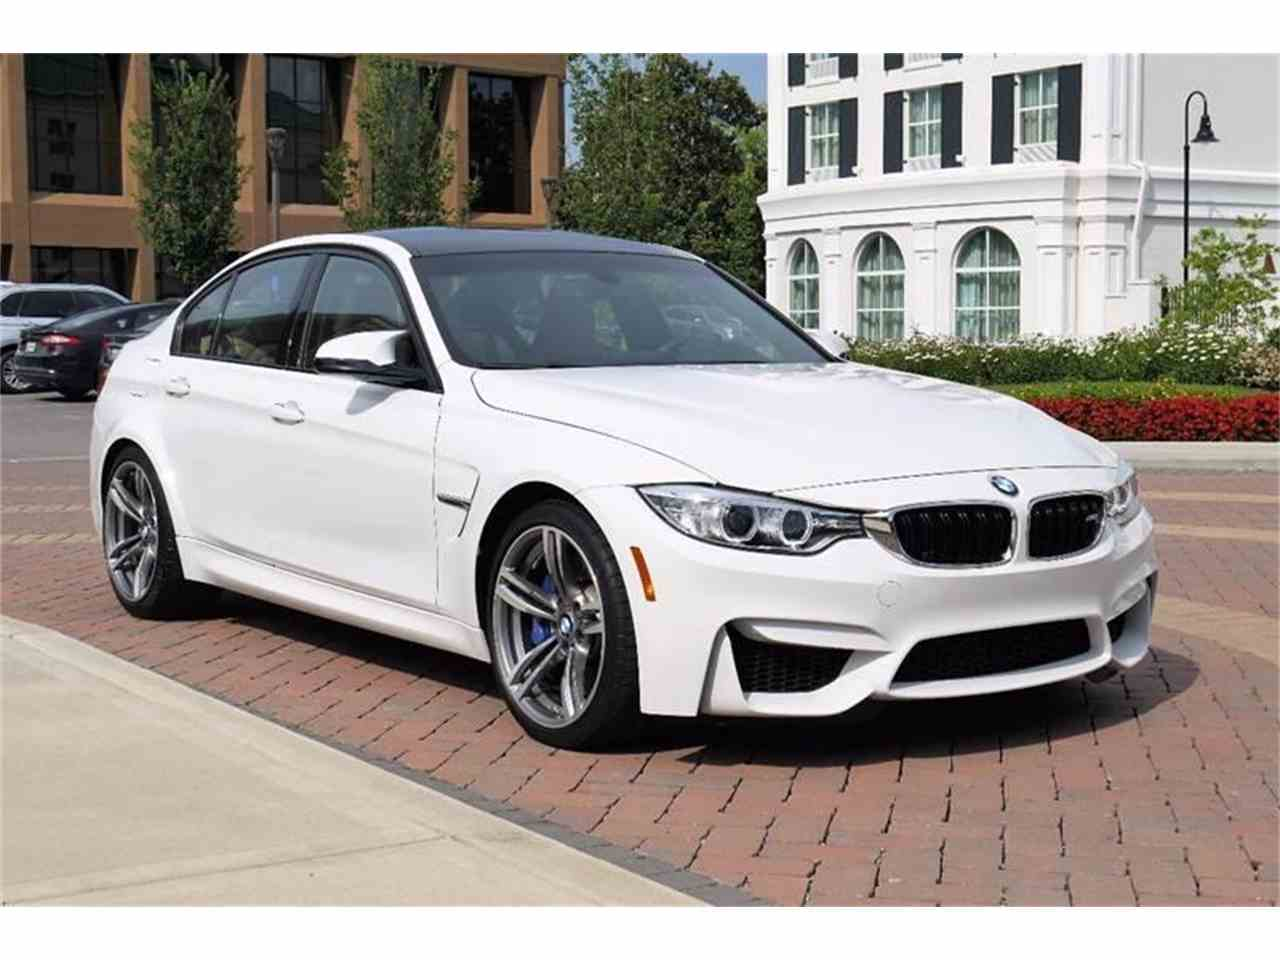 BMW M For Sale ClassicCarscom CC - Bmw 2015 m3 for sale